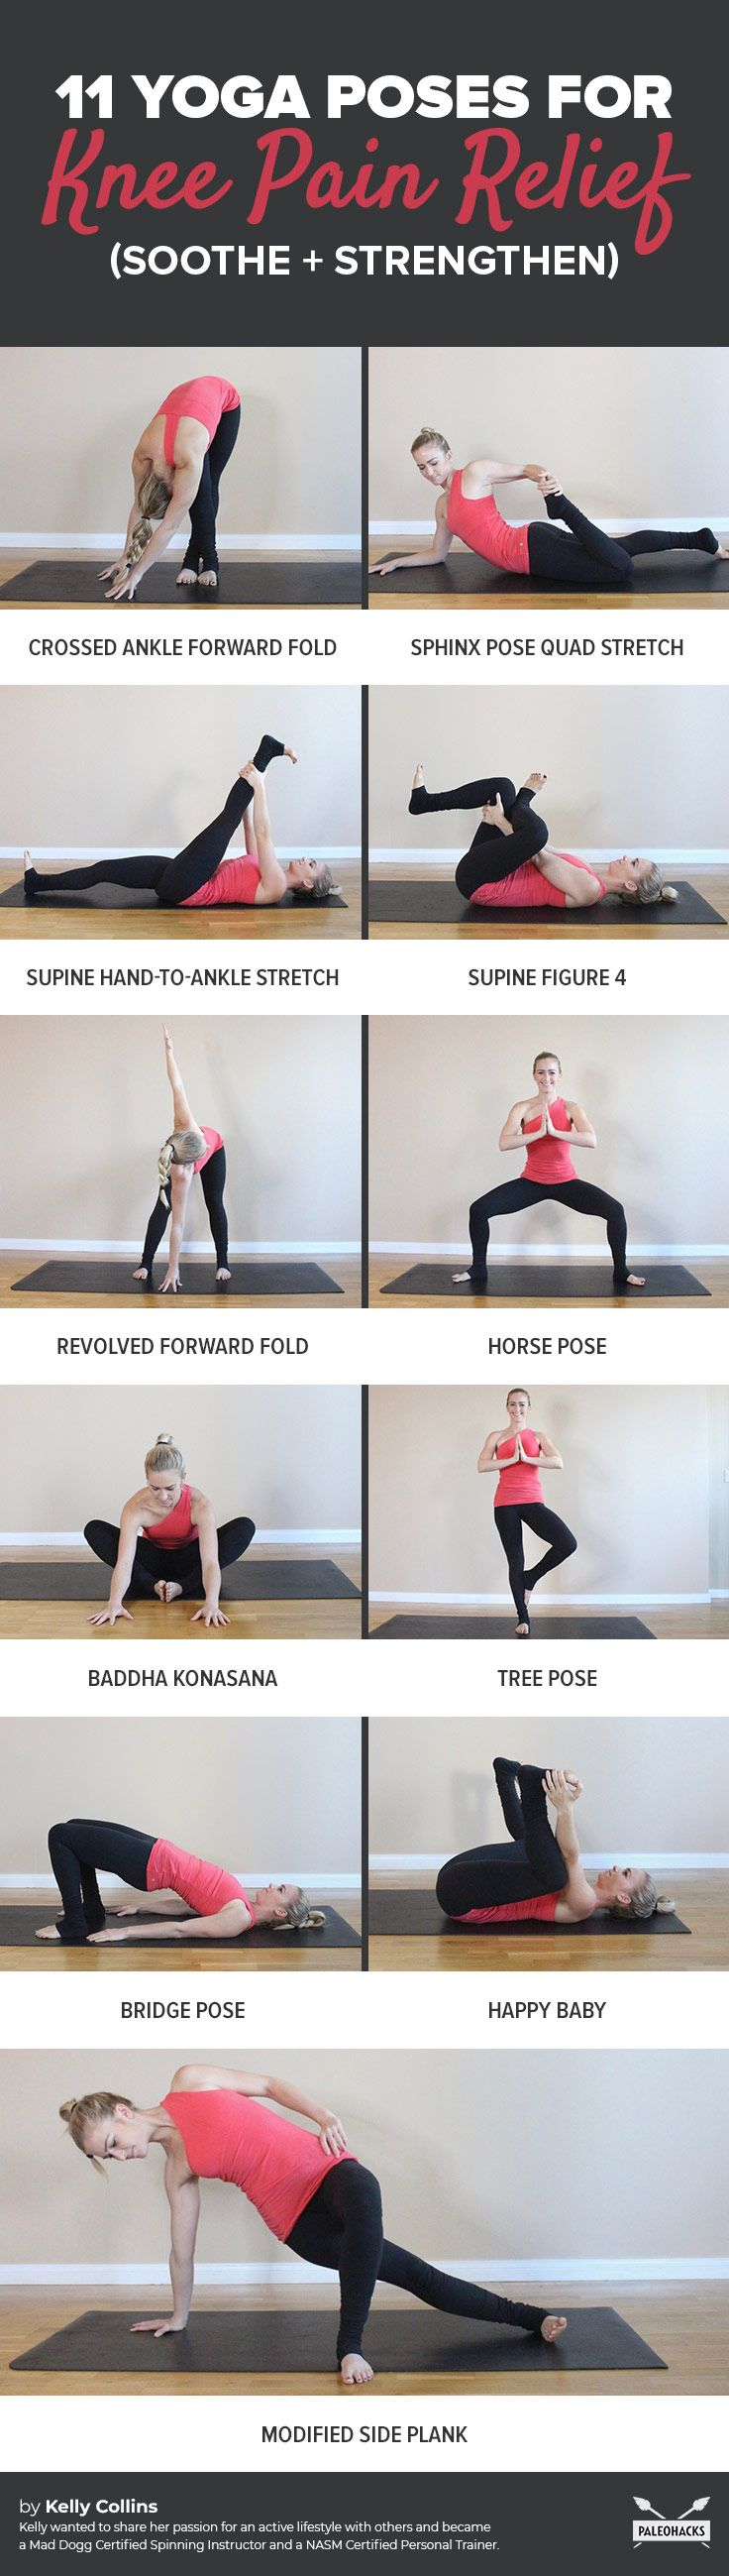 Suffering from achy, painful knees? Try these soothing yoga poses to strengthen your knees and melt away pain. Get all exercises here: http://paleo.co/kneepainyoga